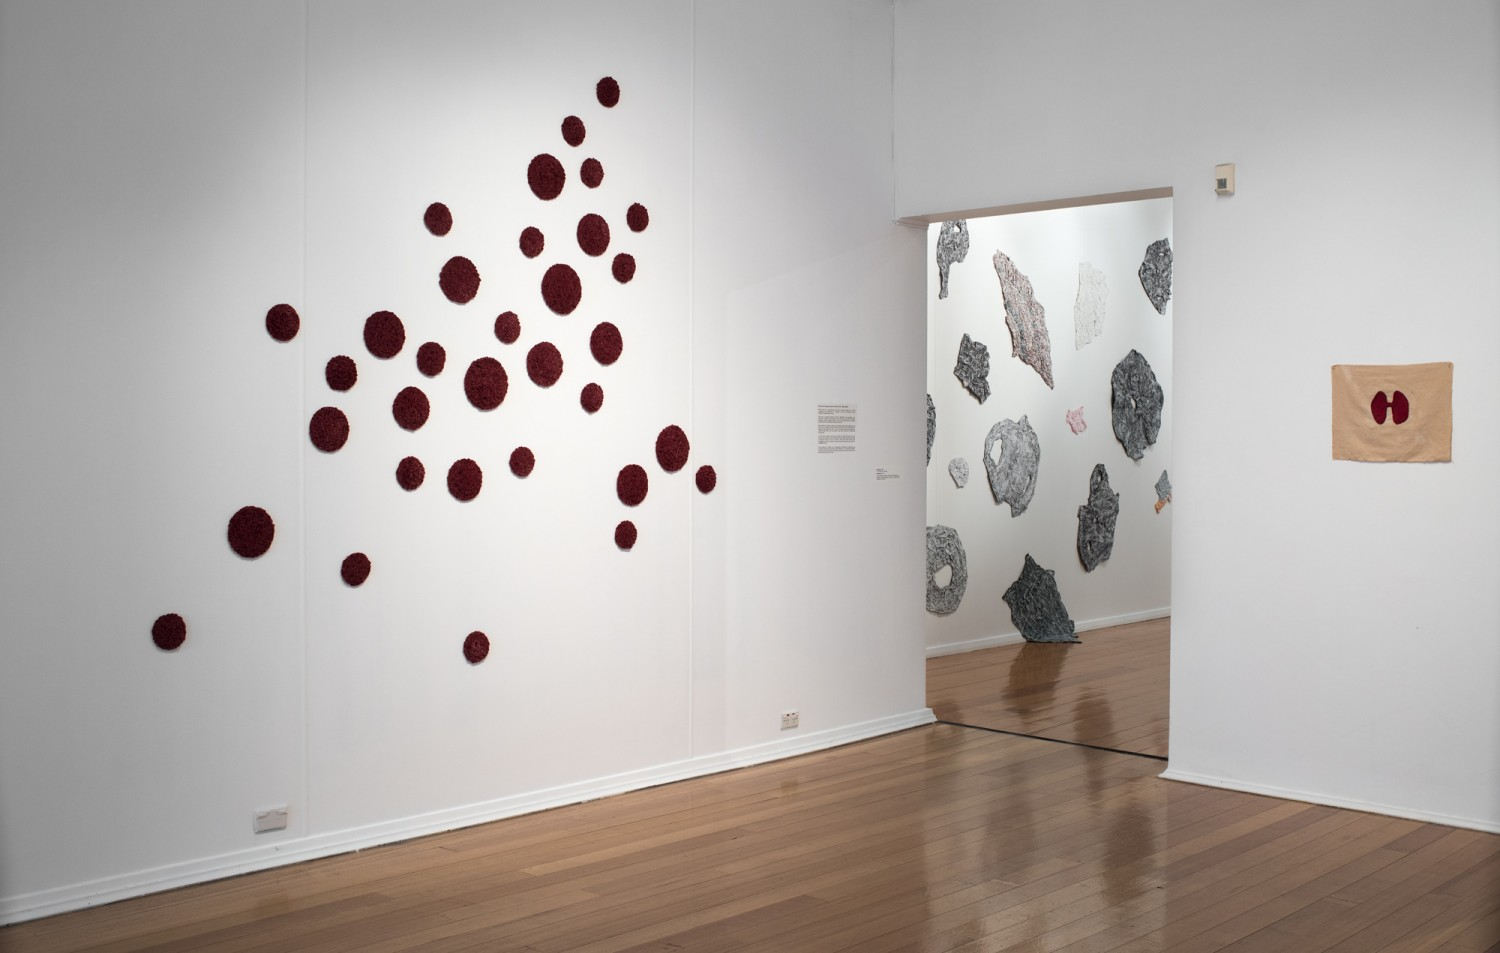 lumen, whitewash, blood is (vi) - installation view by Michele Elliot